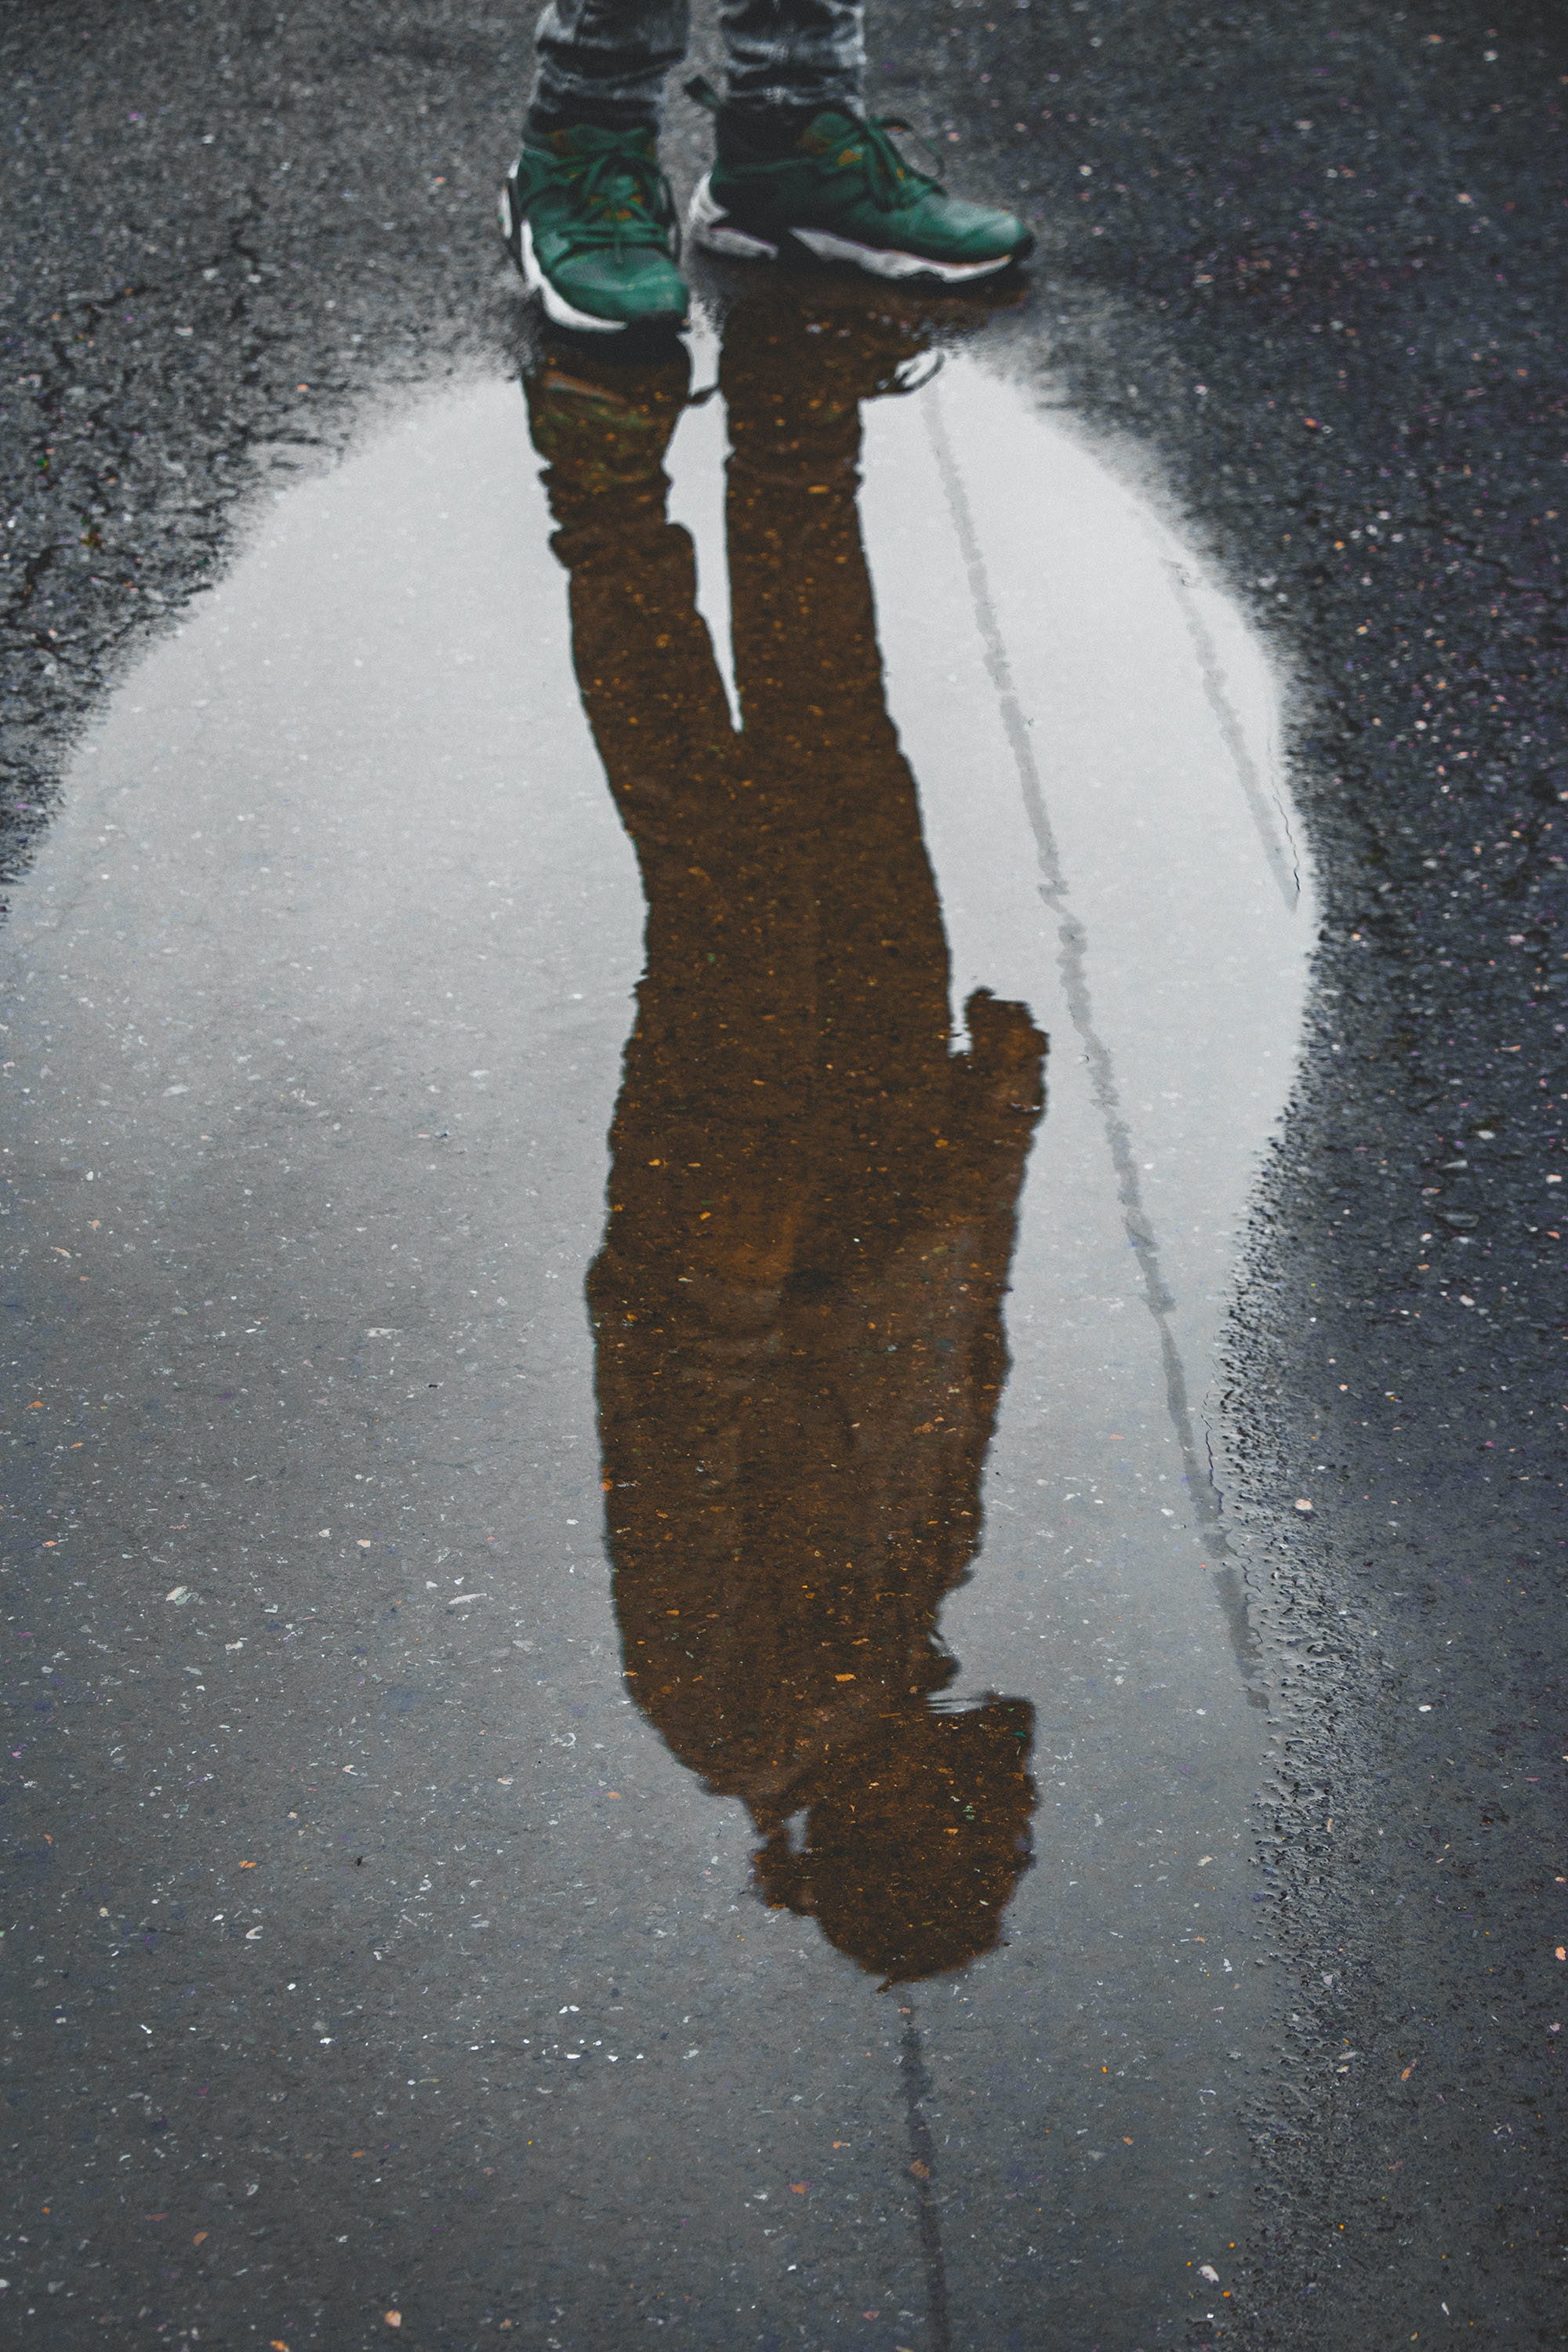 reflection photography of person standing on water